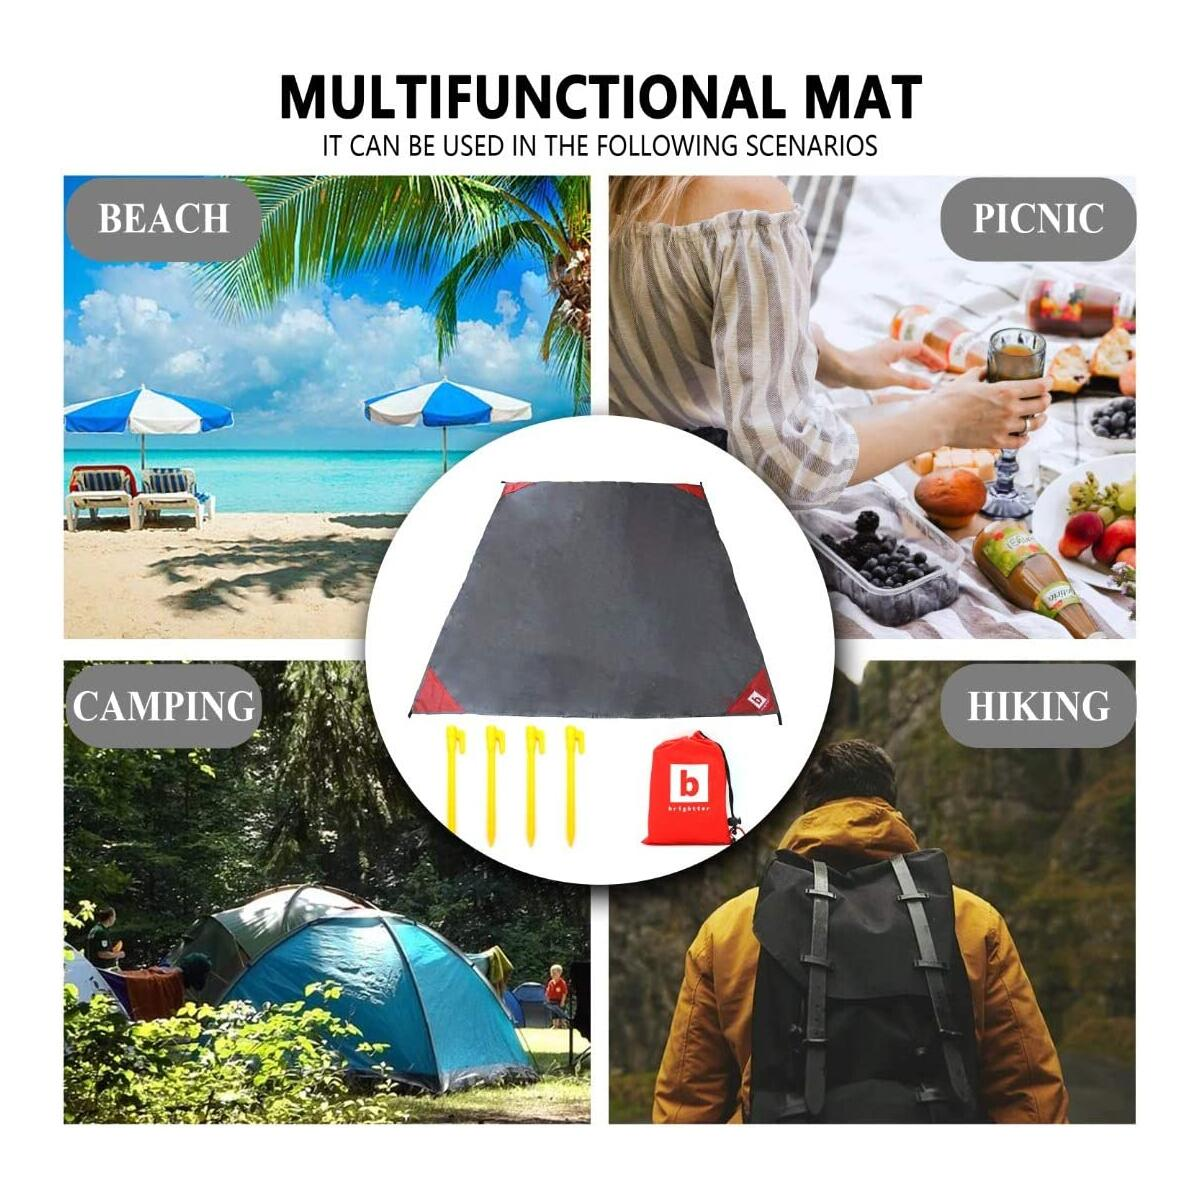 brightter Multi-Purpose, All-Climate Blanket - Waterproof, SandProof, SpillProof - for Picnics, Camping, Beach, Hiking - (LG) Portable, Durable & Lightweight, with Extras.